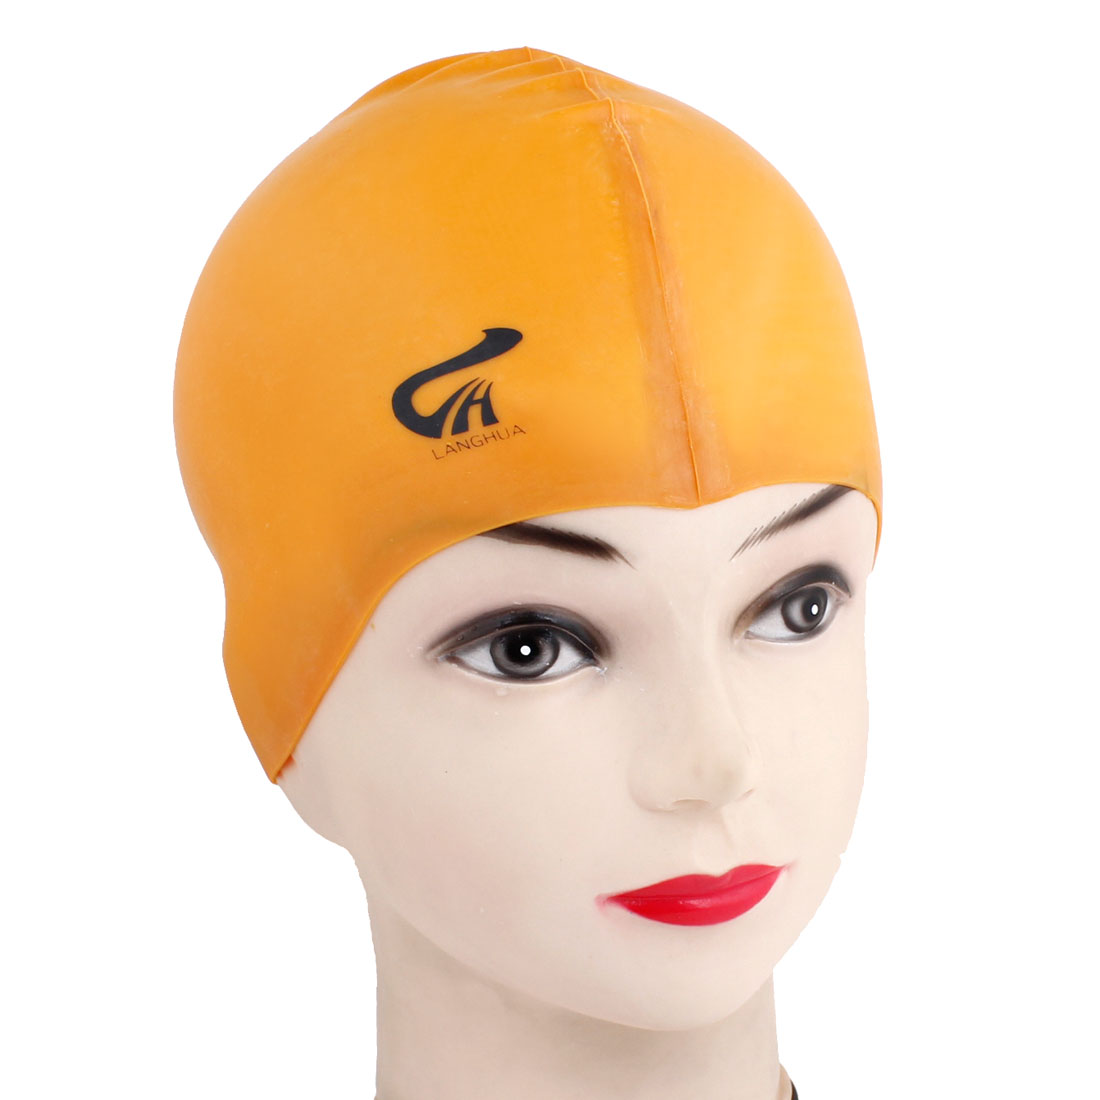 Orange Soft Silicone Stretch Swimming Swim Cap Hat for Women Men